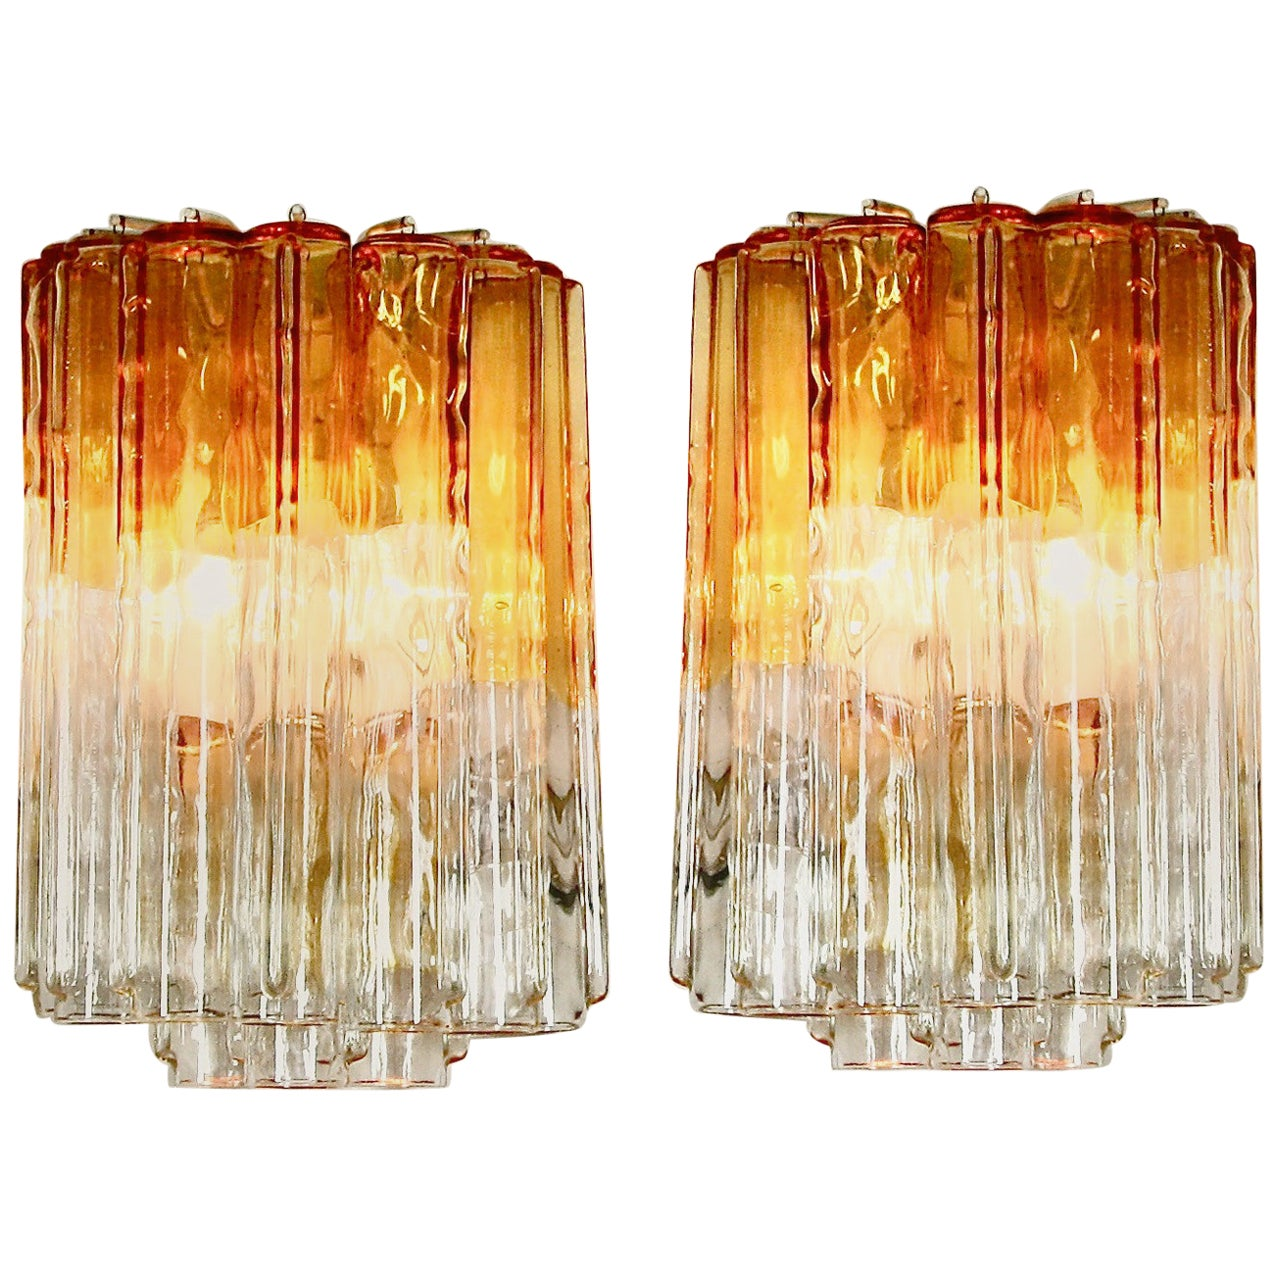 Pair of Original Wall Sconces by Venini, Italy, 1960s